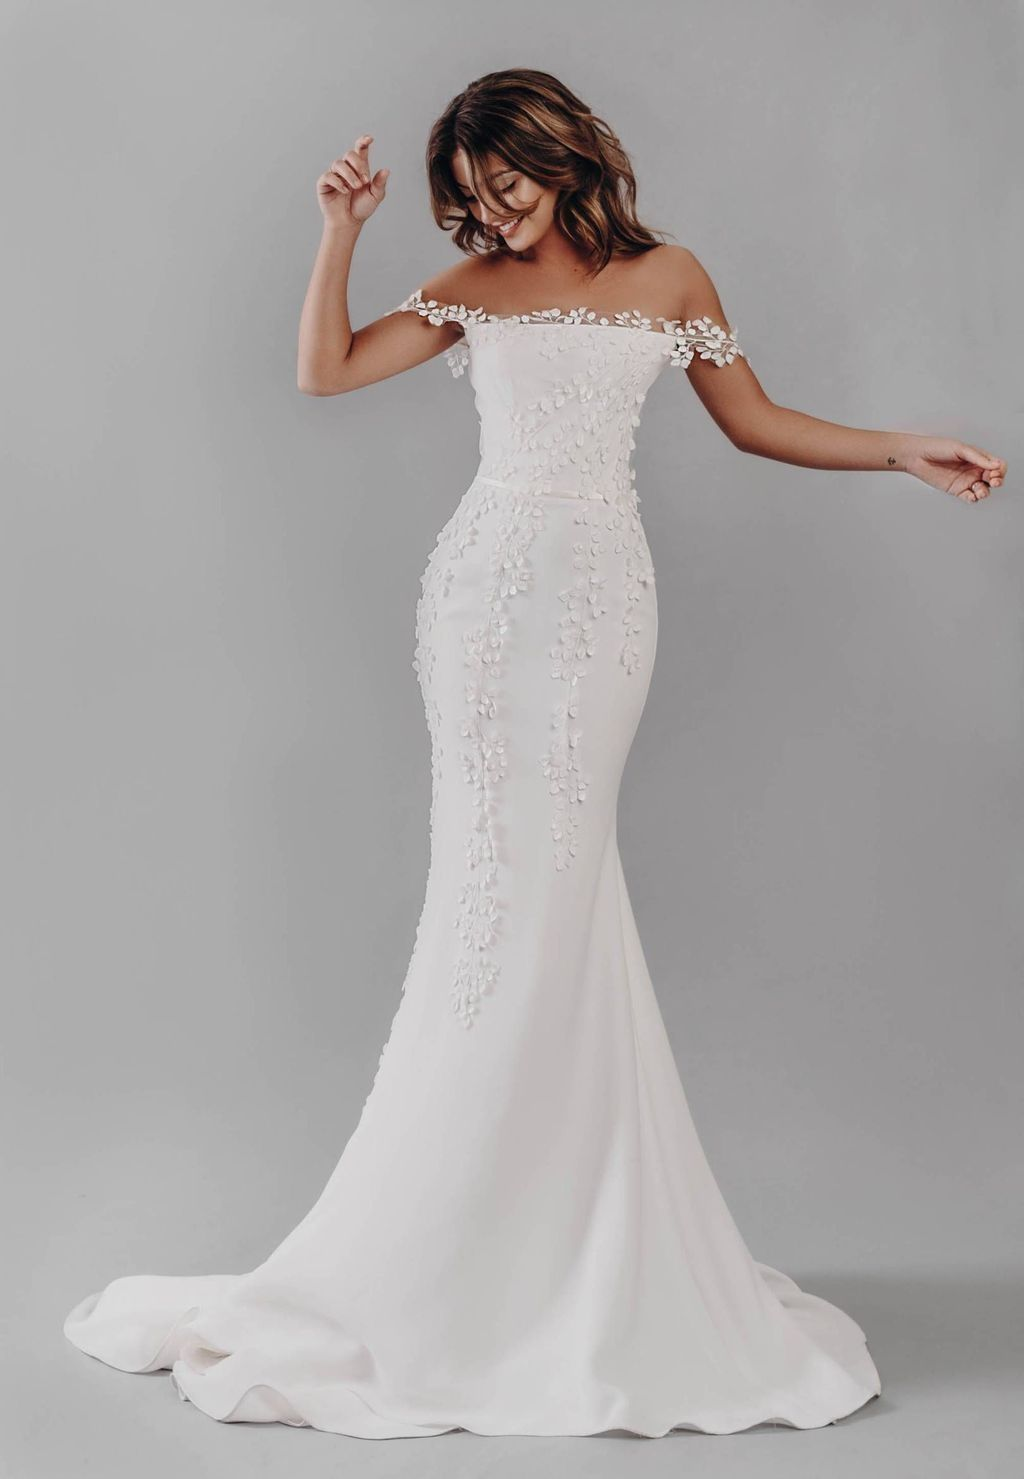 47 Newest Wedding Dresses Ideas To Inspire | Spaghetti strap